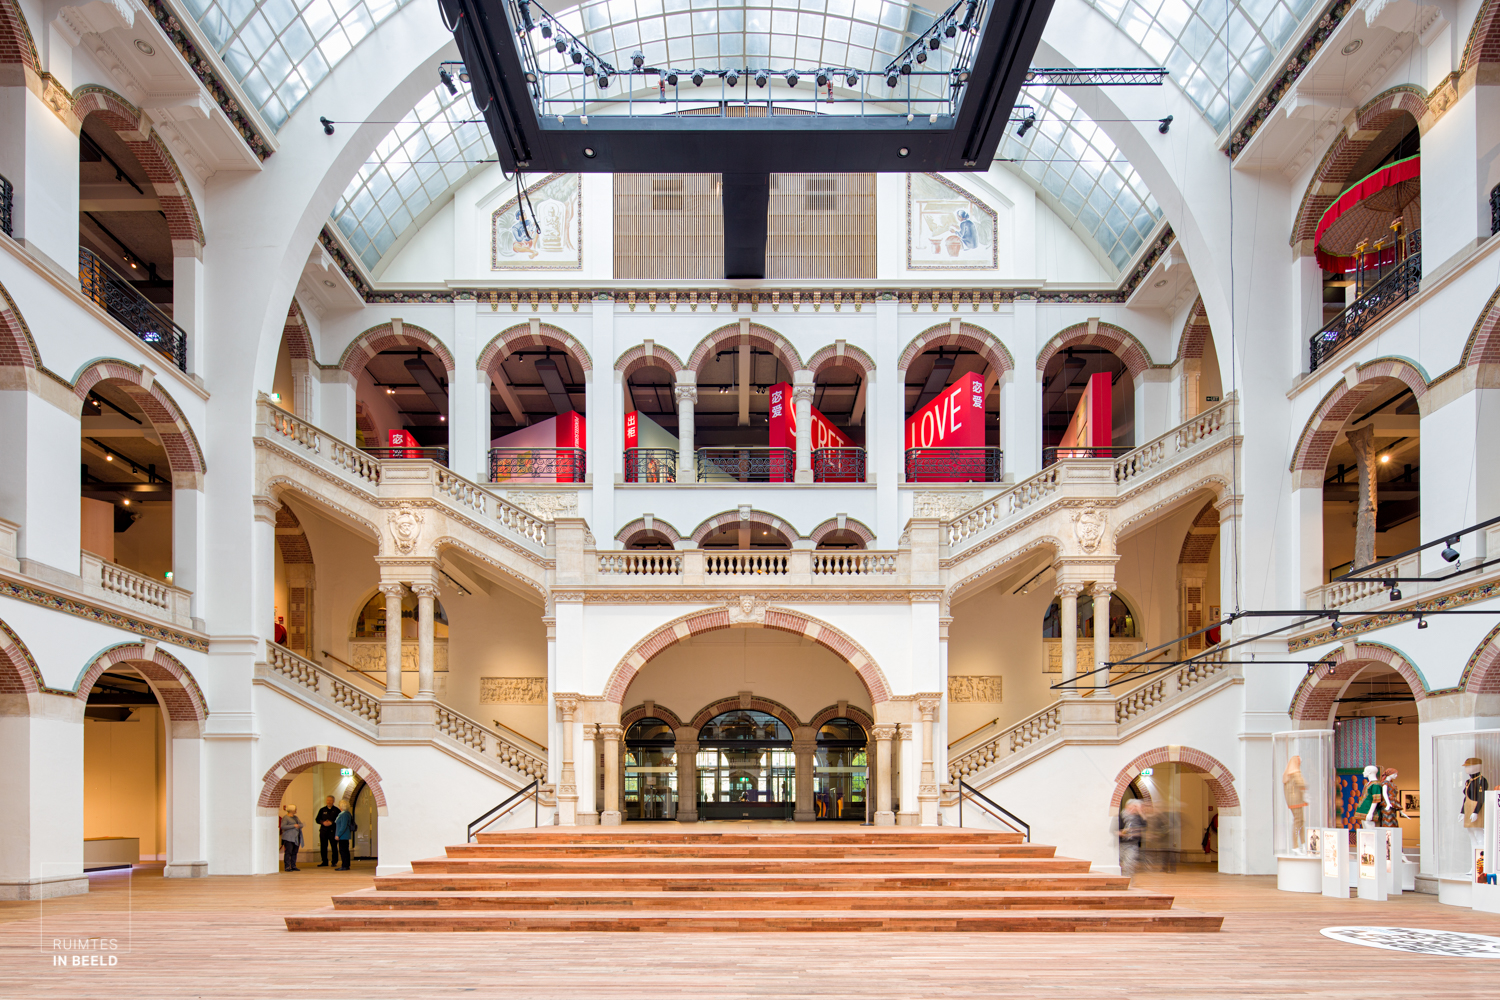 Lichthal van Tropenmuseum in Amsterdam | main hall of Tropenmuseum in The Netherlands